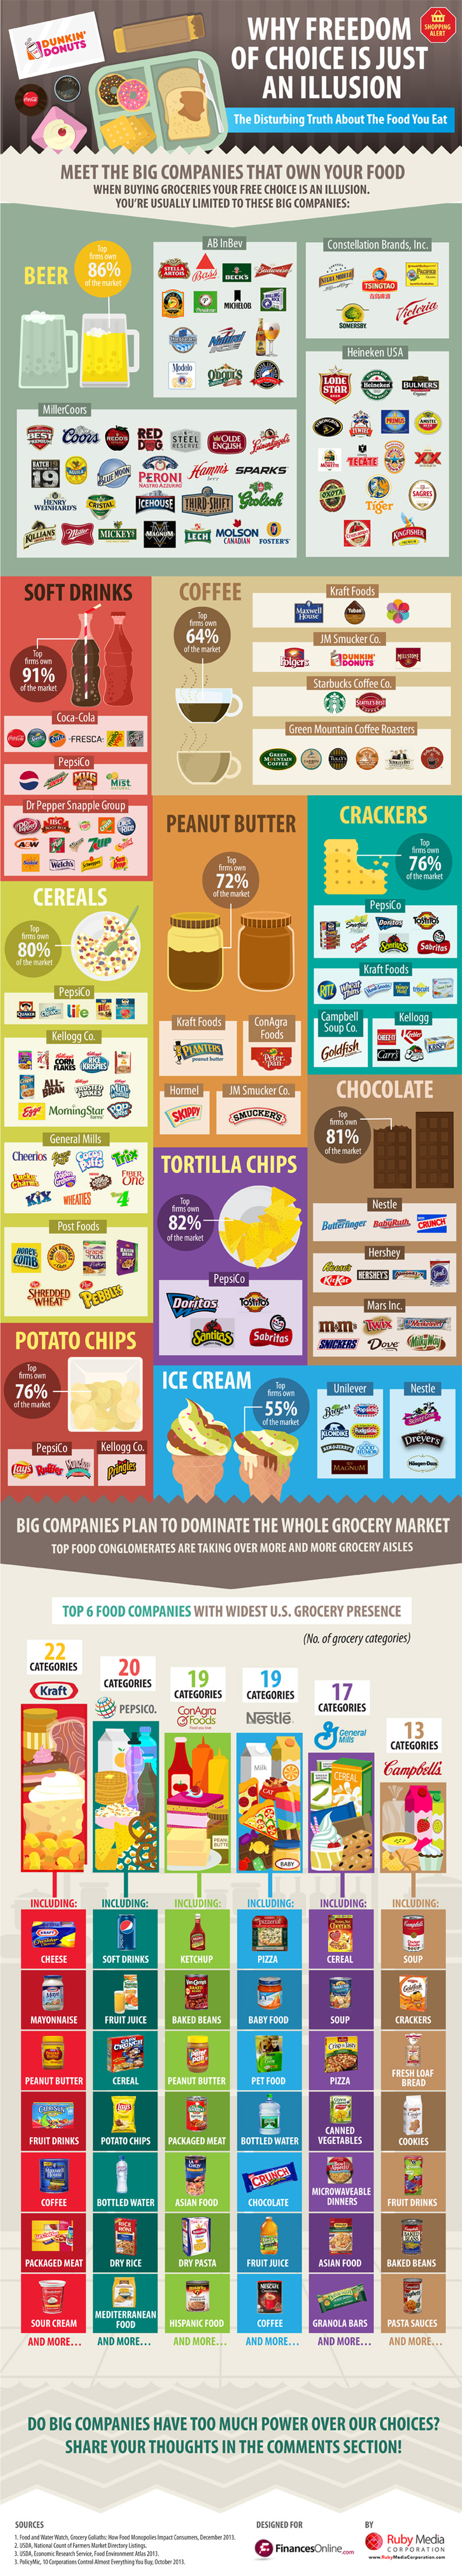 comparison of big food companies